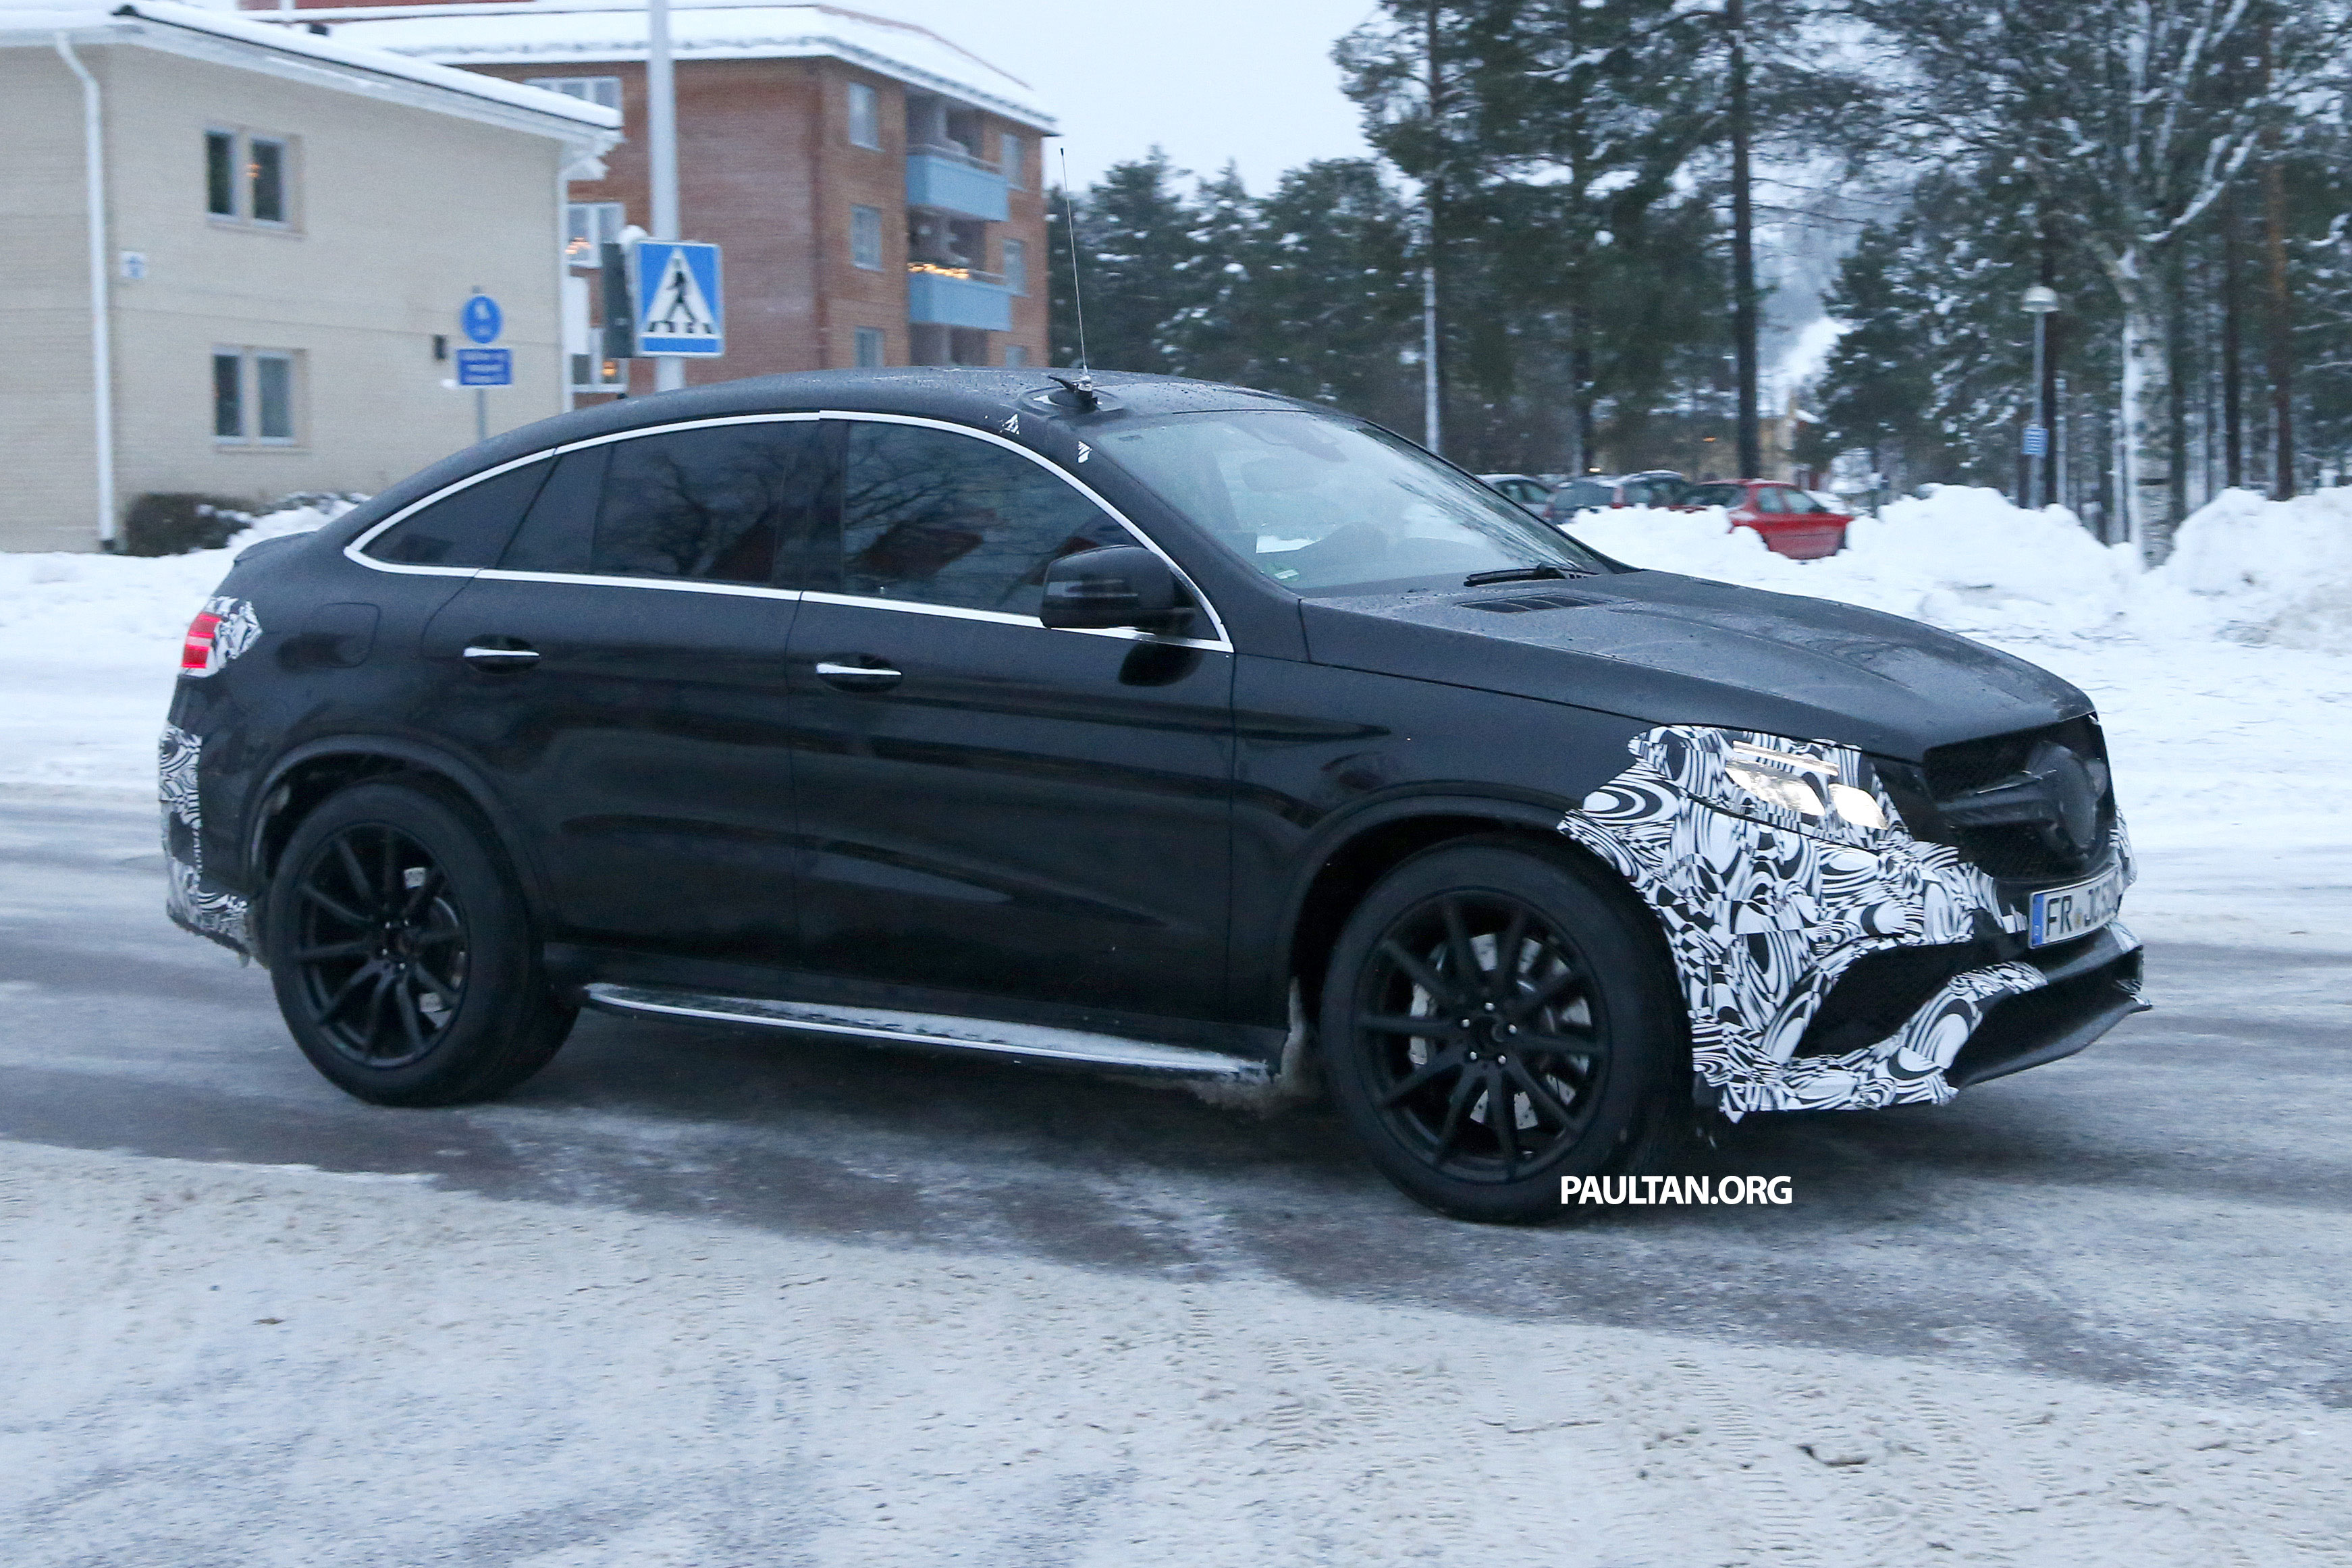 SPYSHOTS: Mercedes-Benz GLE Coupe winter-testing Image 294210